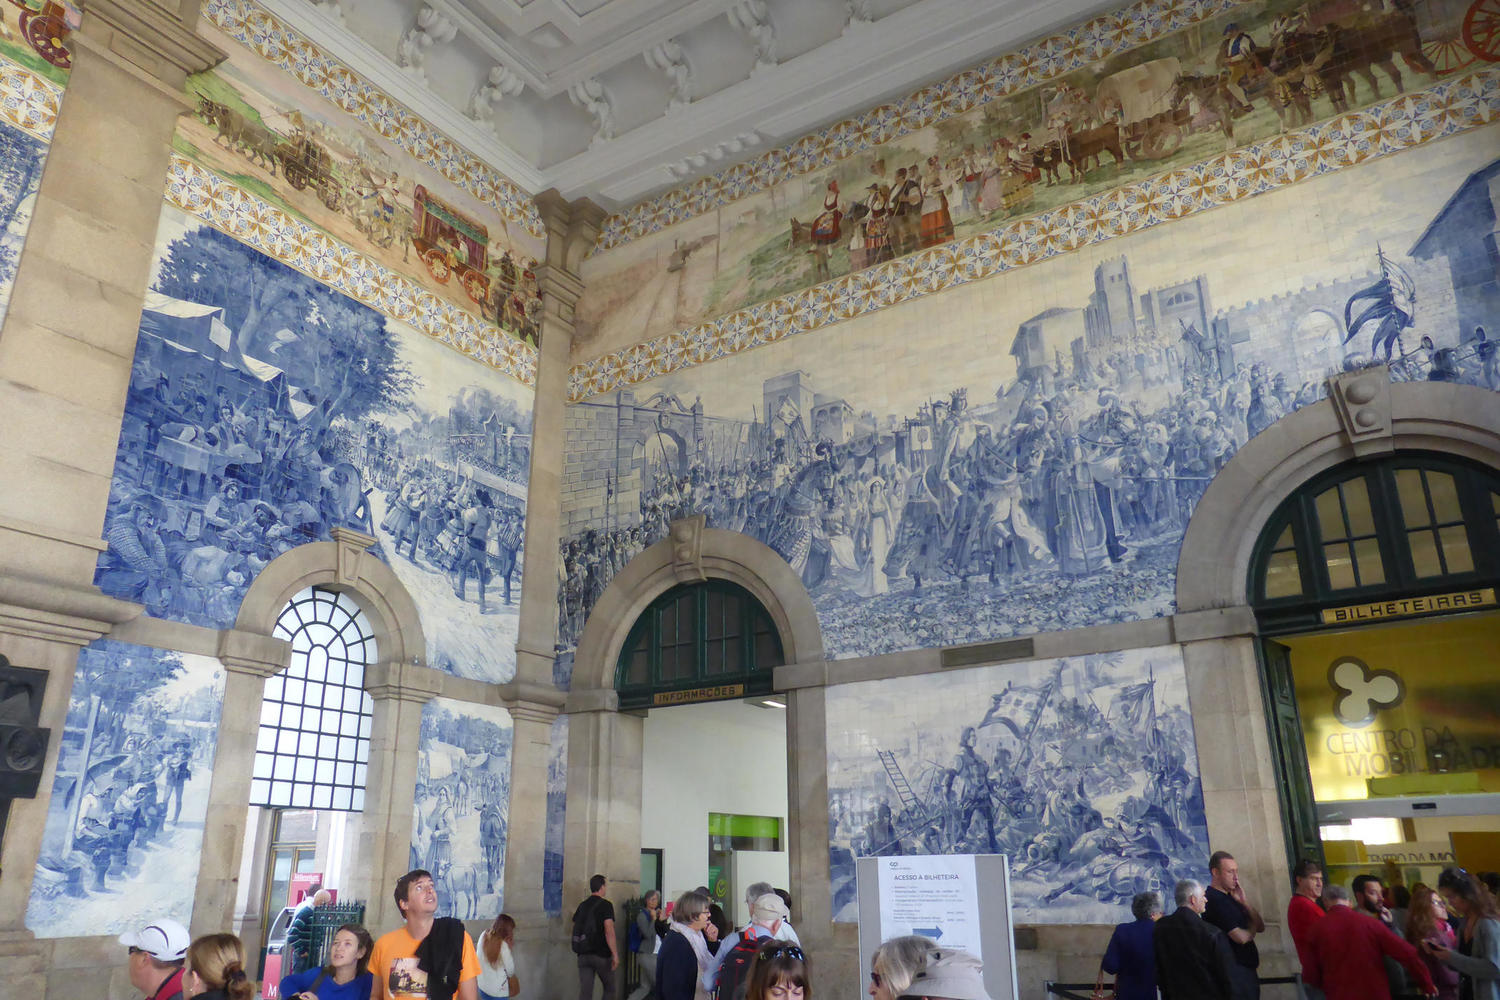 Perhaps the most famous azulejos in Portugal, in the Sao Bento train station